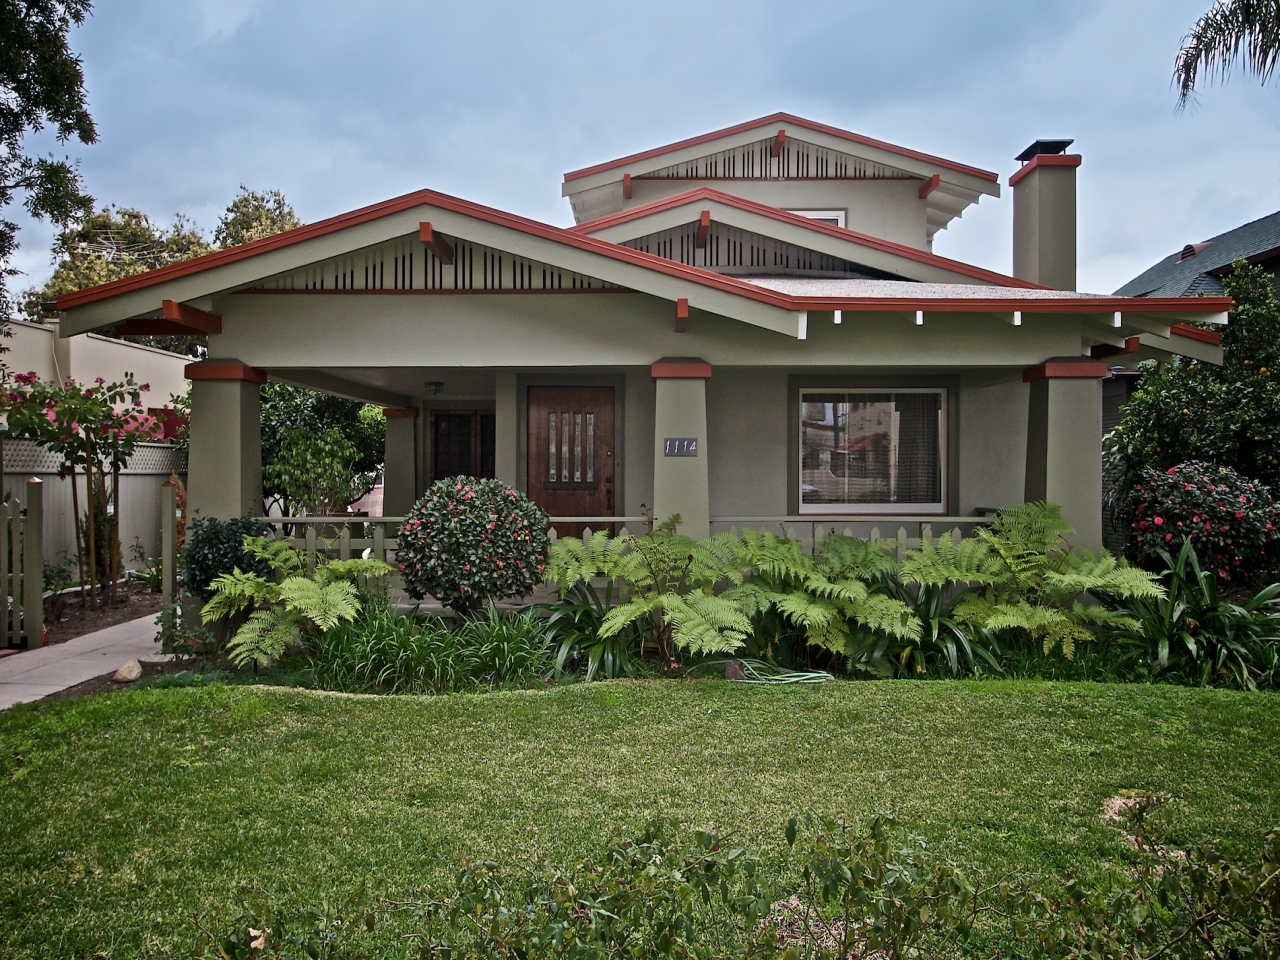 California Bungalow Style Bungalow Style Architecture